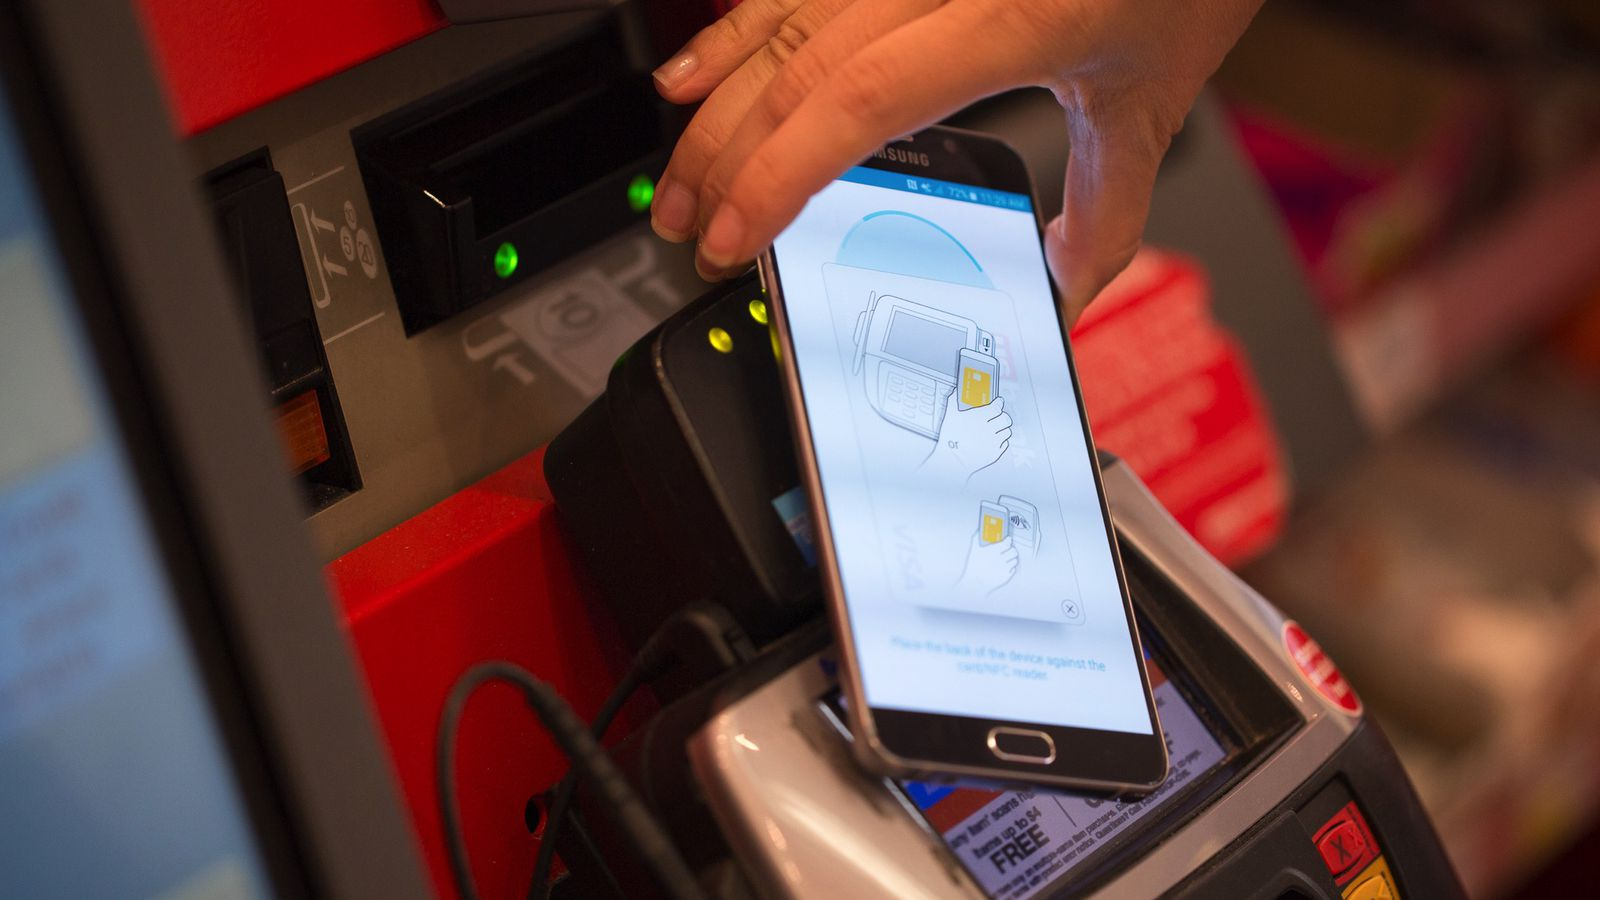 Samsung Pay adds Wells Fargo support for US cardholders ...